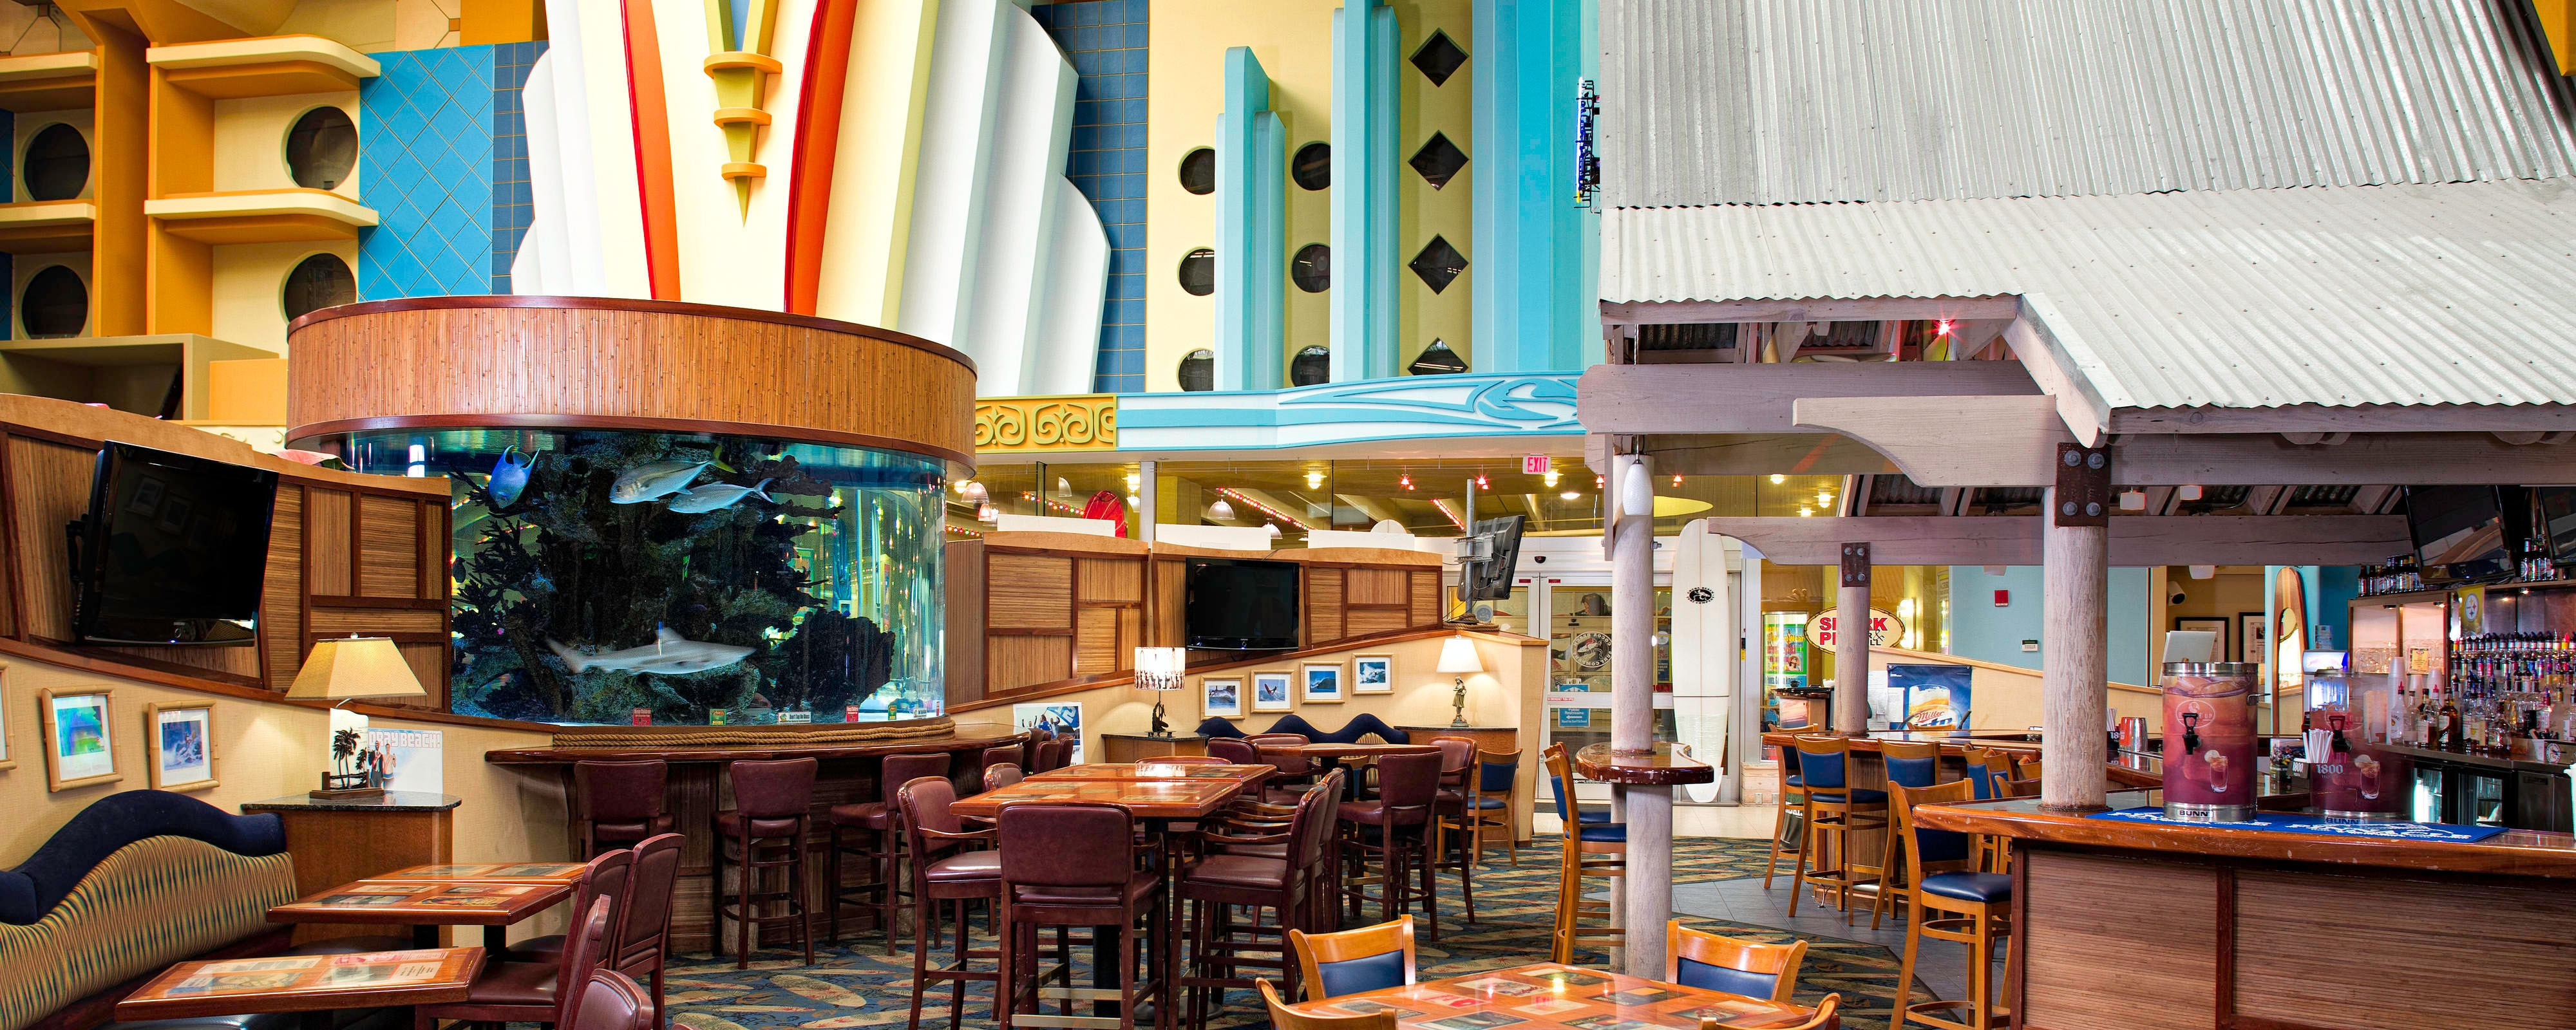 Cocoa Beach Hotel Dining Restaurants Four Points By